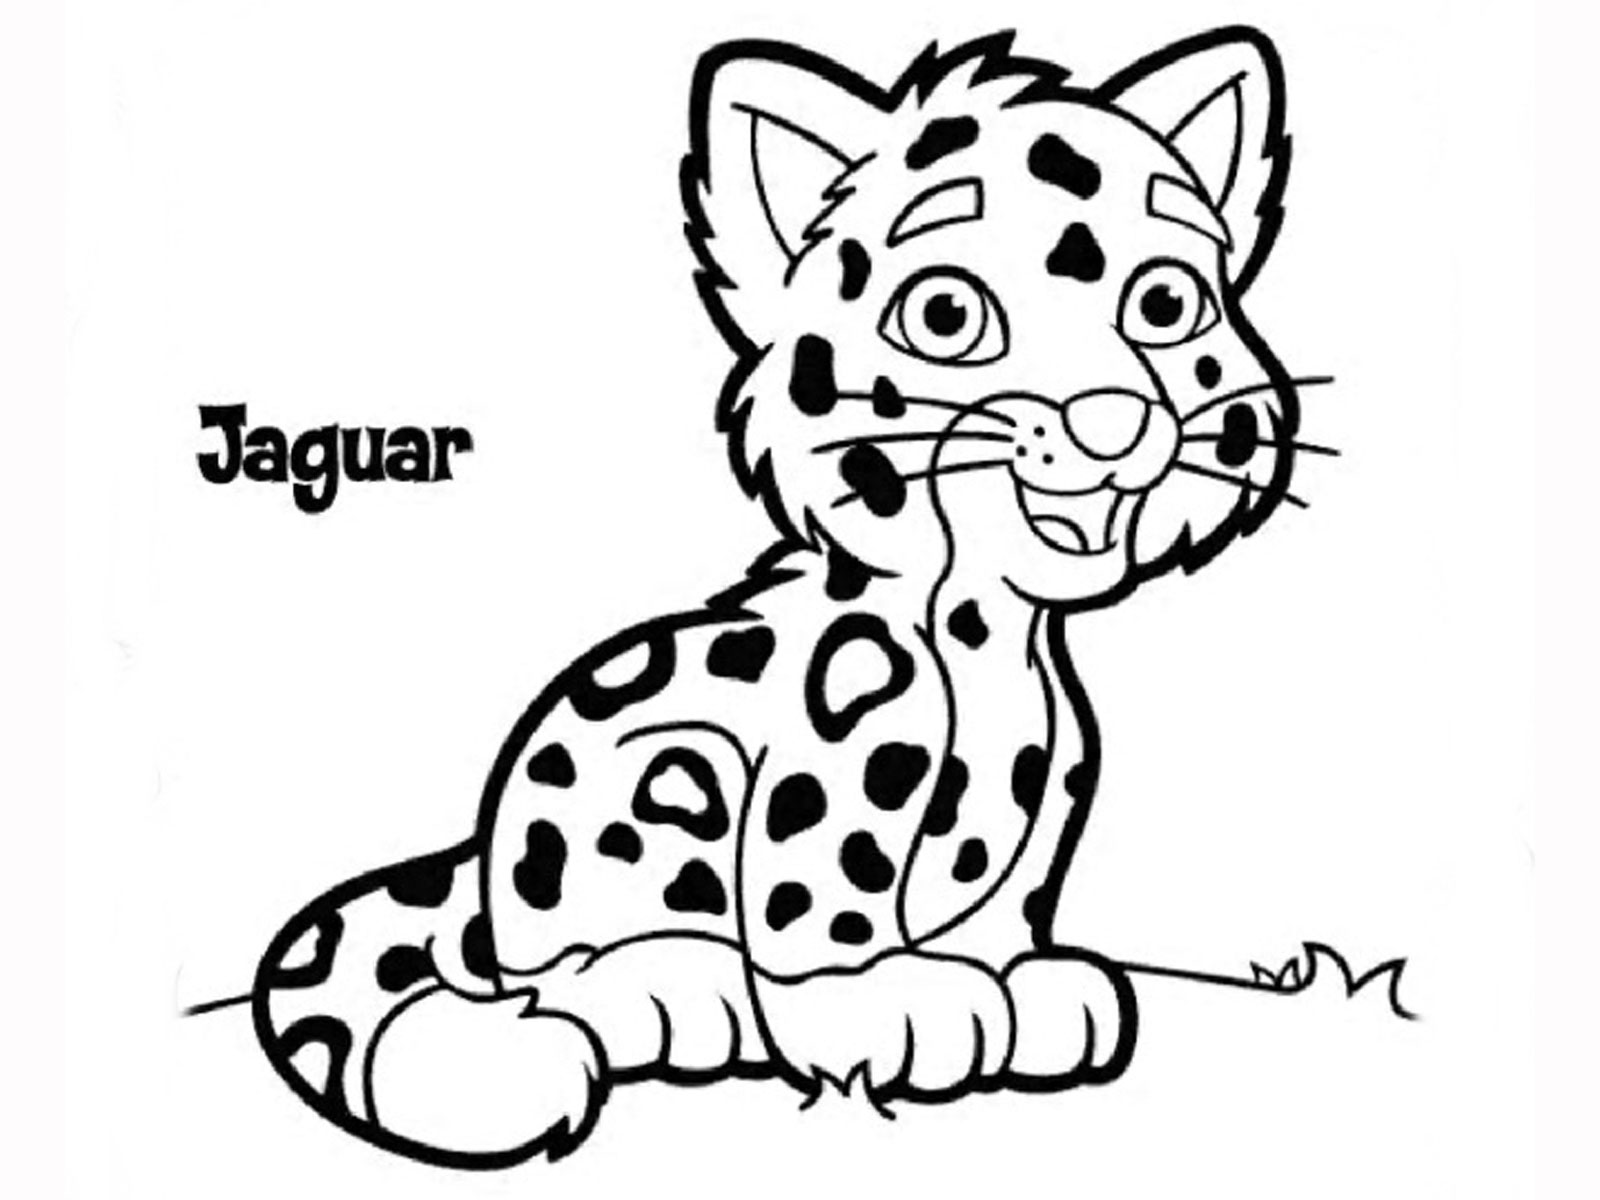 baby jaguar coloring pages diego baby jaguar coloring pages printable free jaguar pages baby coloring